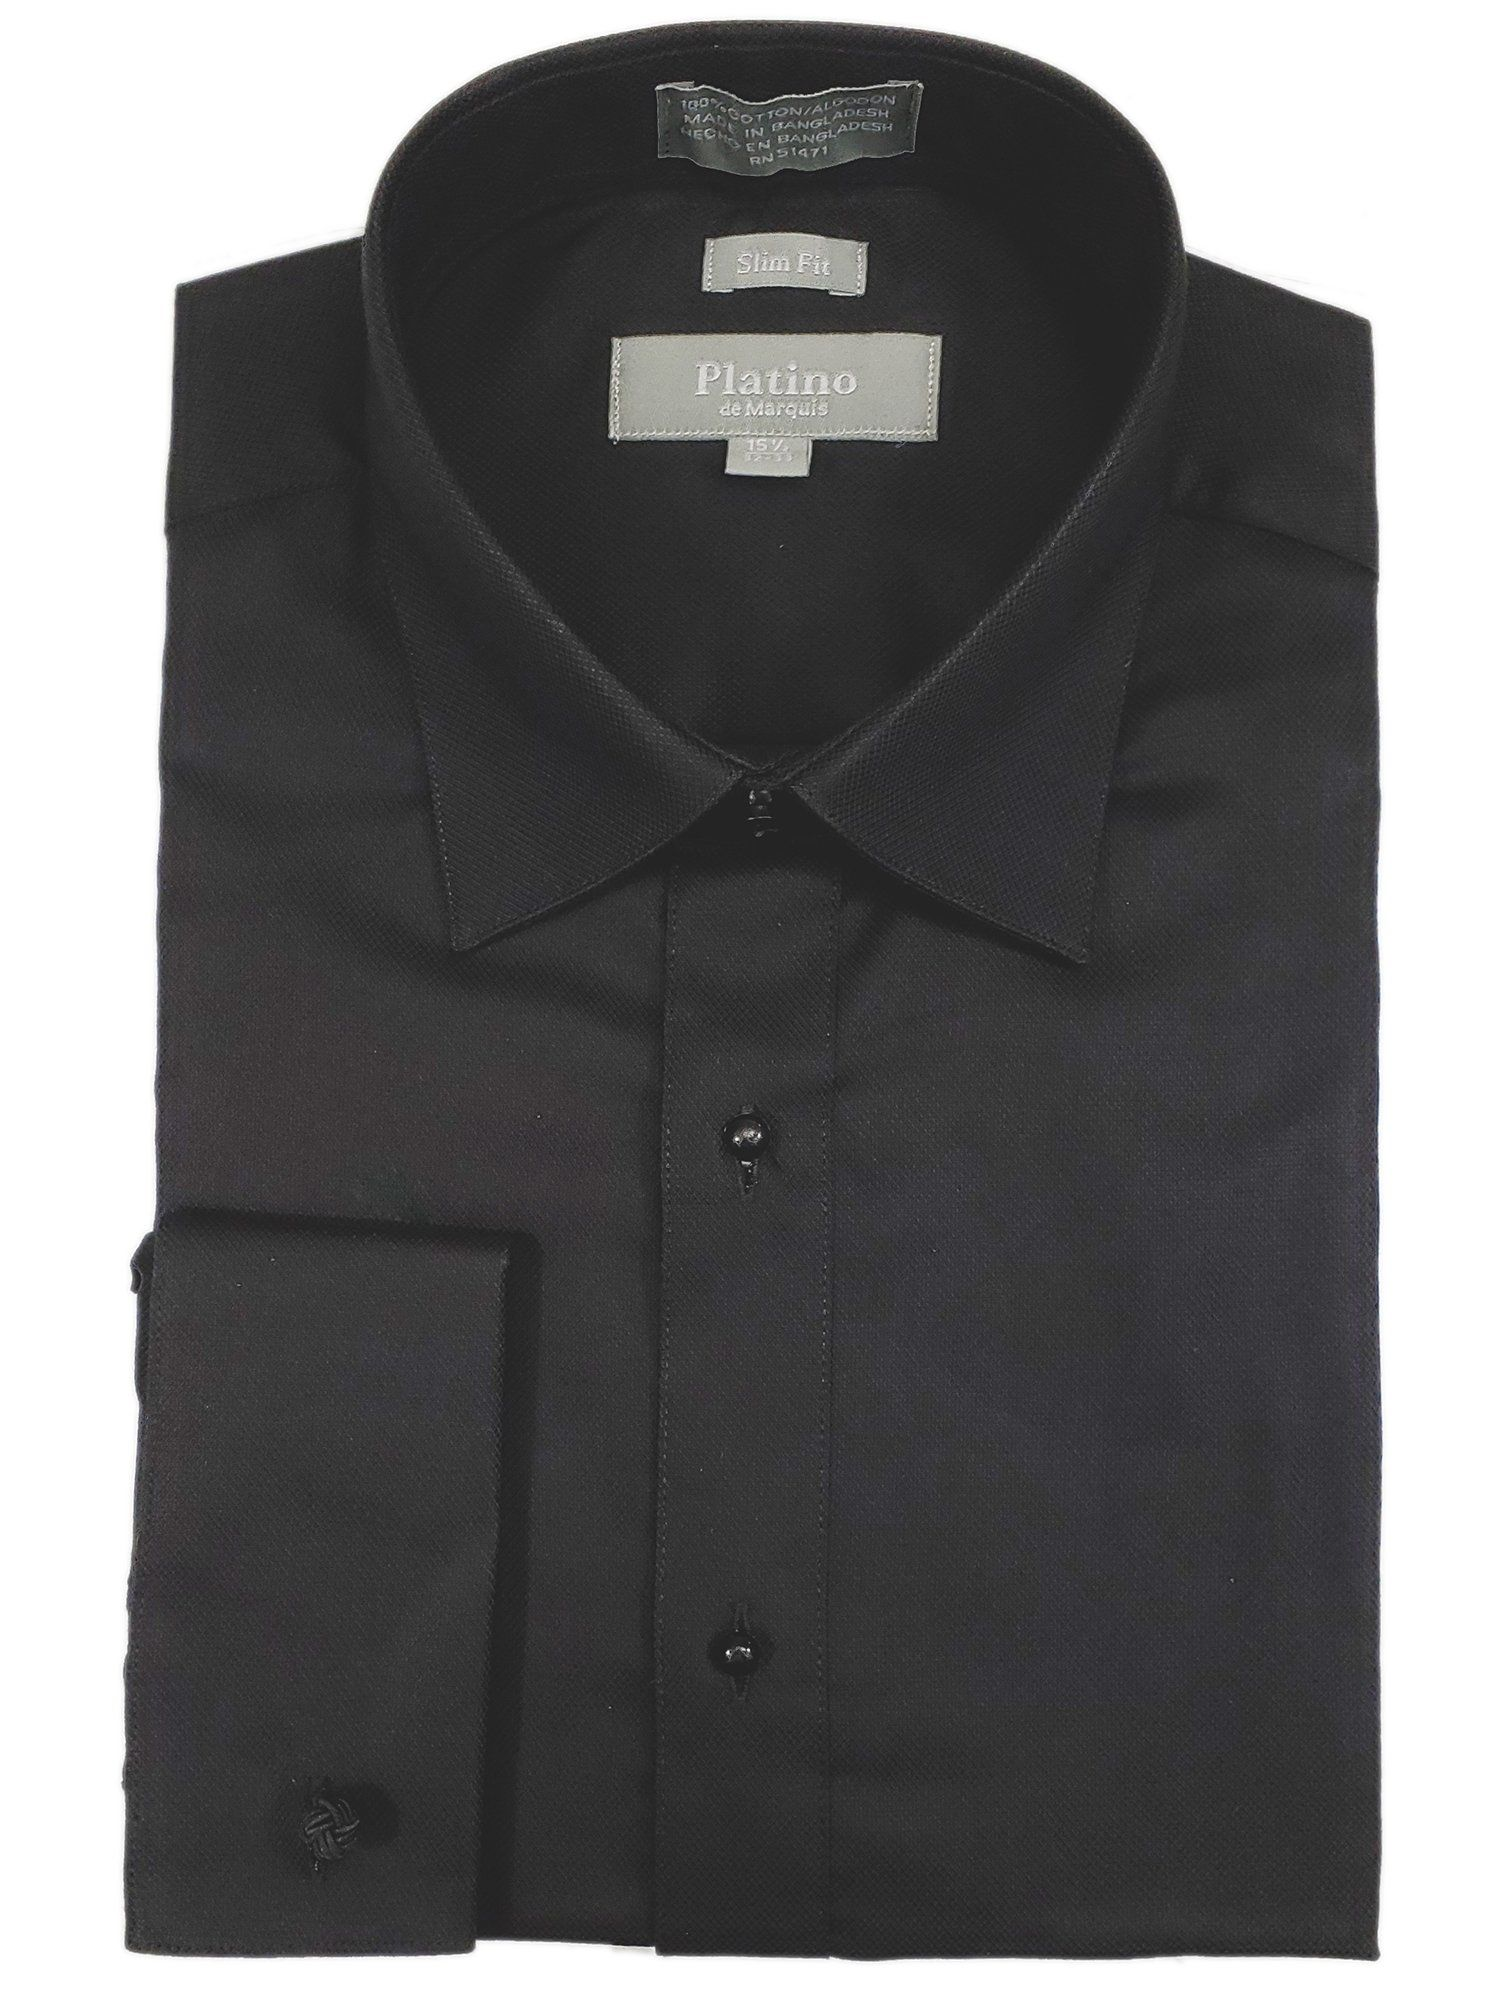 Men's Textured Slim Fit French Cuff Lay down Cotton Tuxedo Shirt – Black / 14.5 Neck 32/33 Sleeve